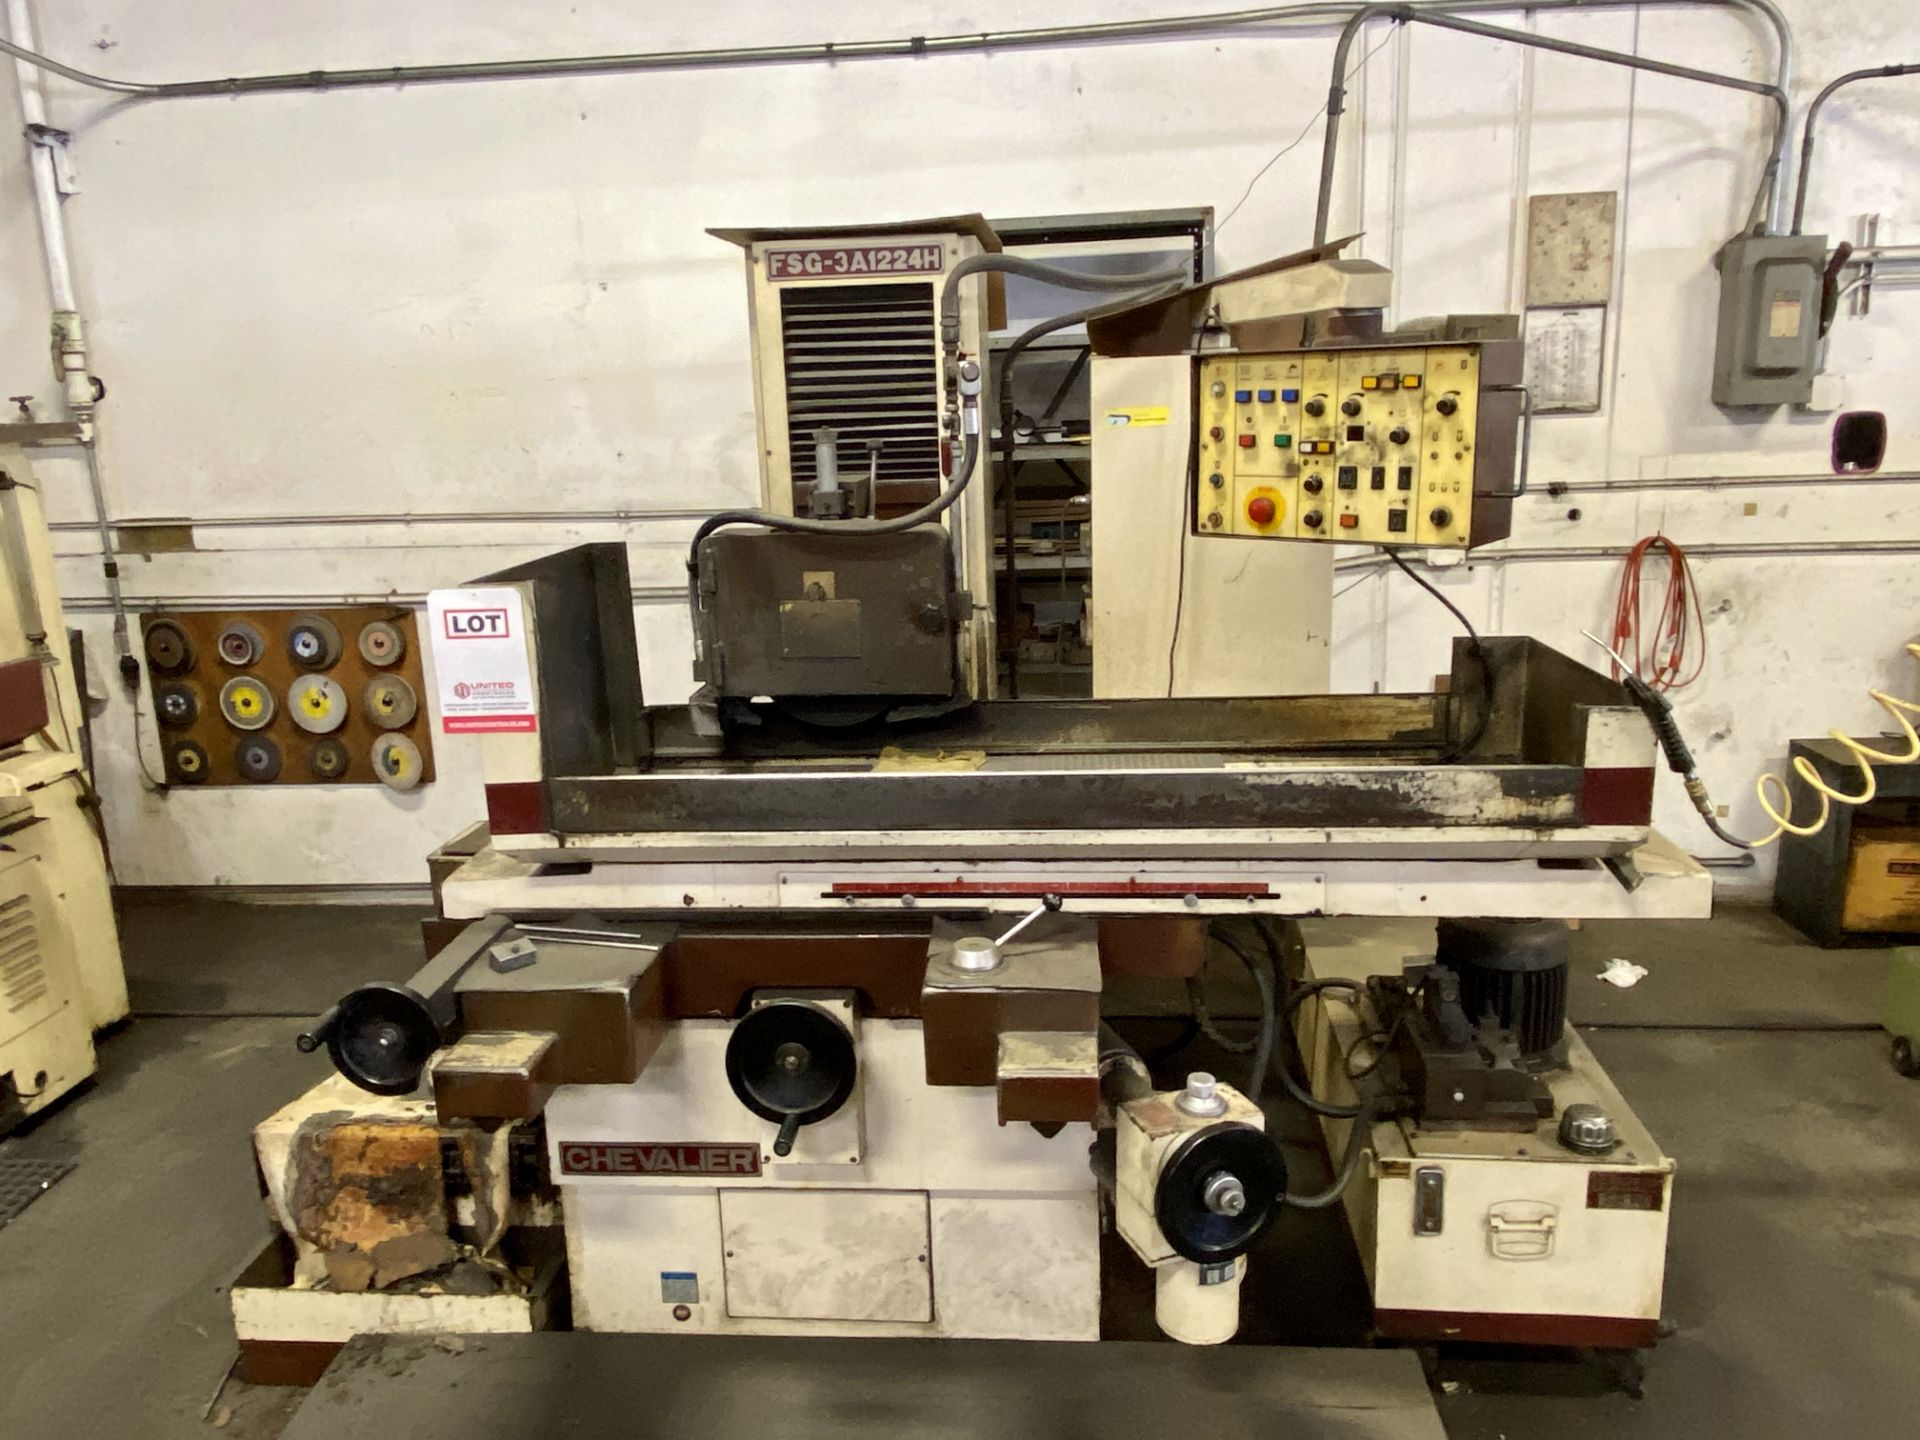 """Lot 0F - CHEVALIER FSG-3A1224H RECIPROCATING SURFACE GRINDER, 3-AXIS, HYDRAULIC, 12"""" X 24"""""""